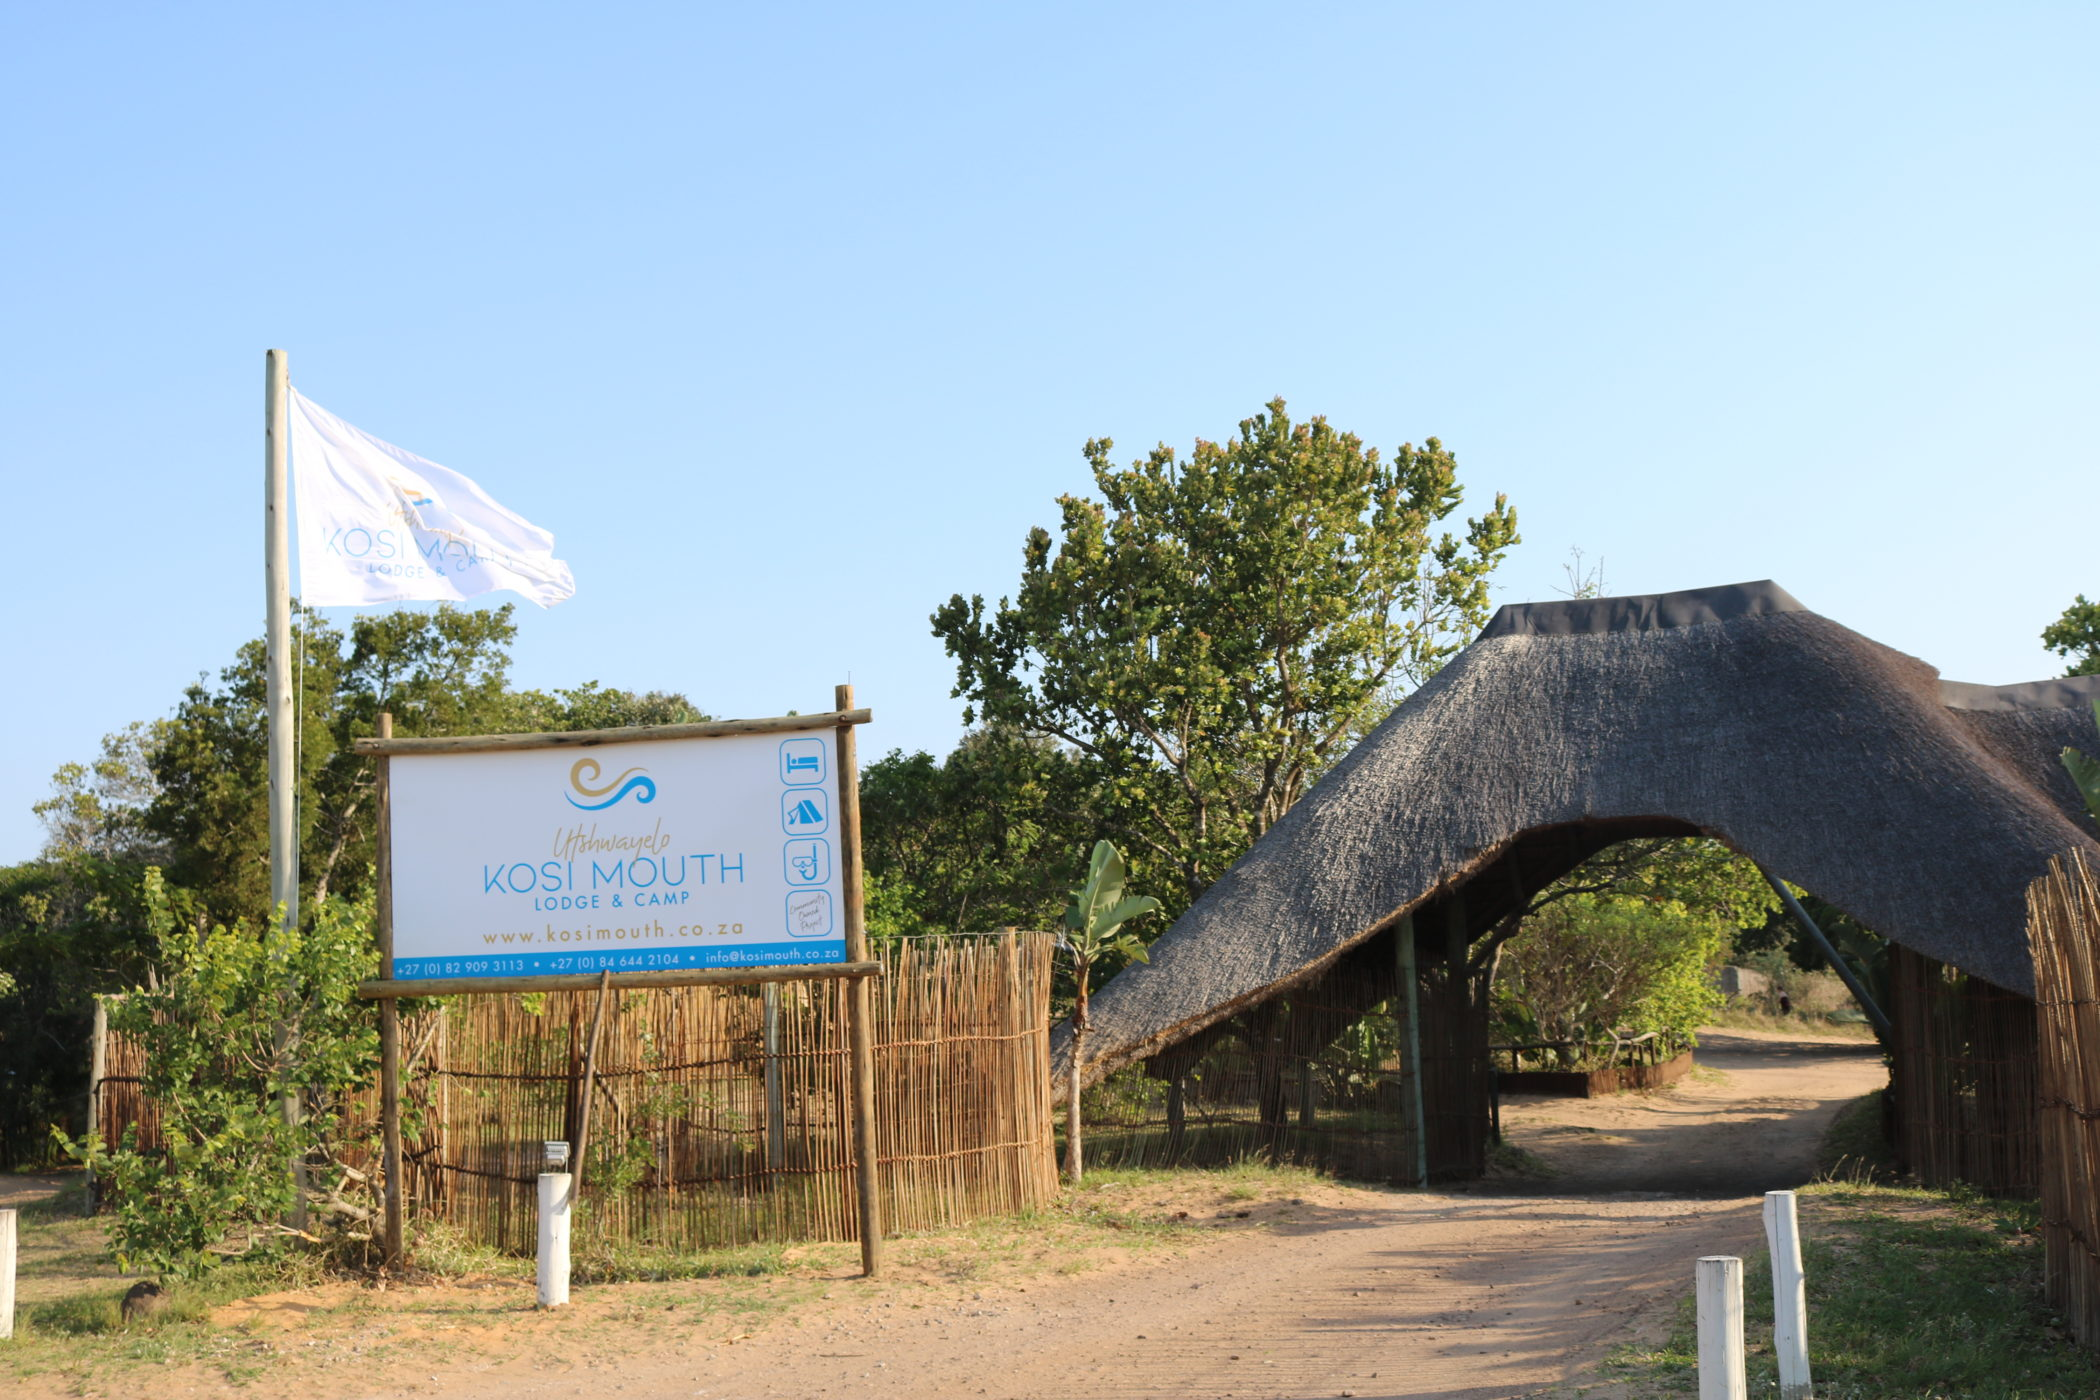 Utshwayelo Kosi Mouth Lodge and Camp Entrance